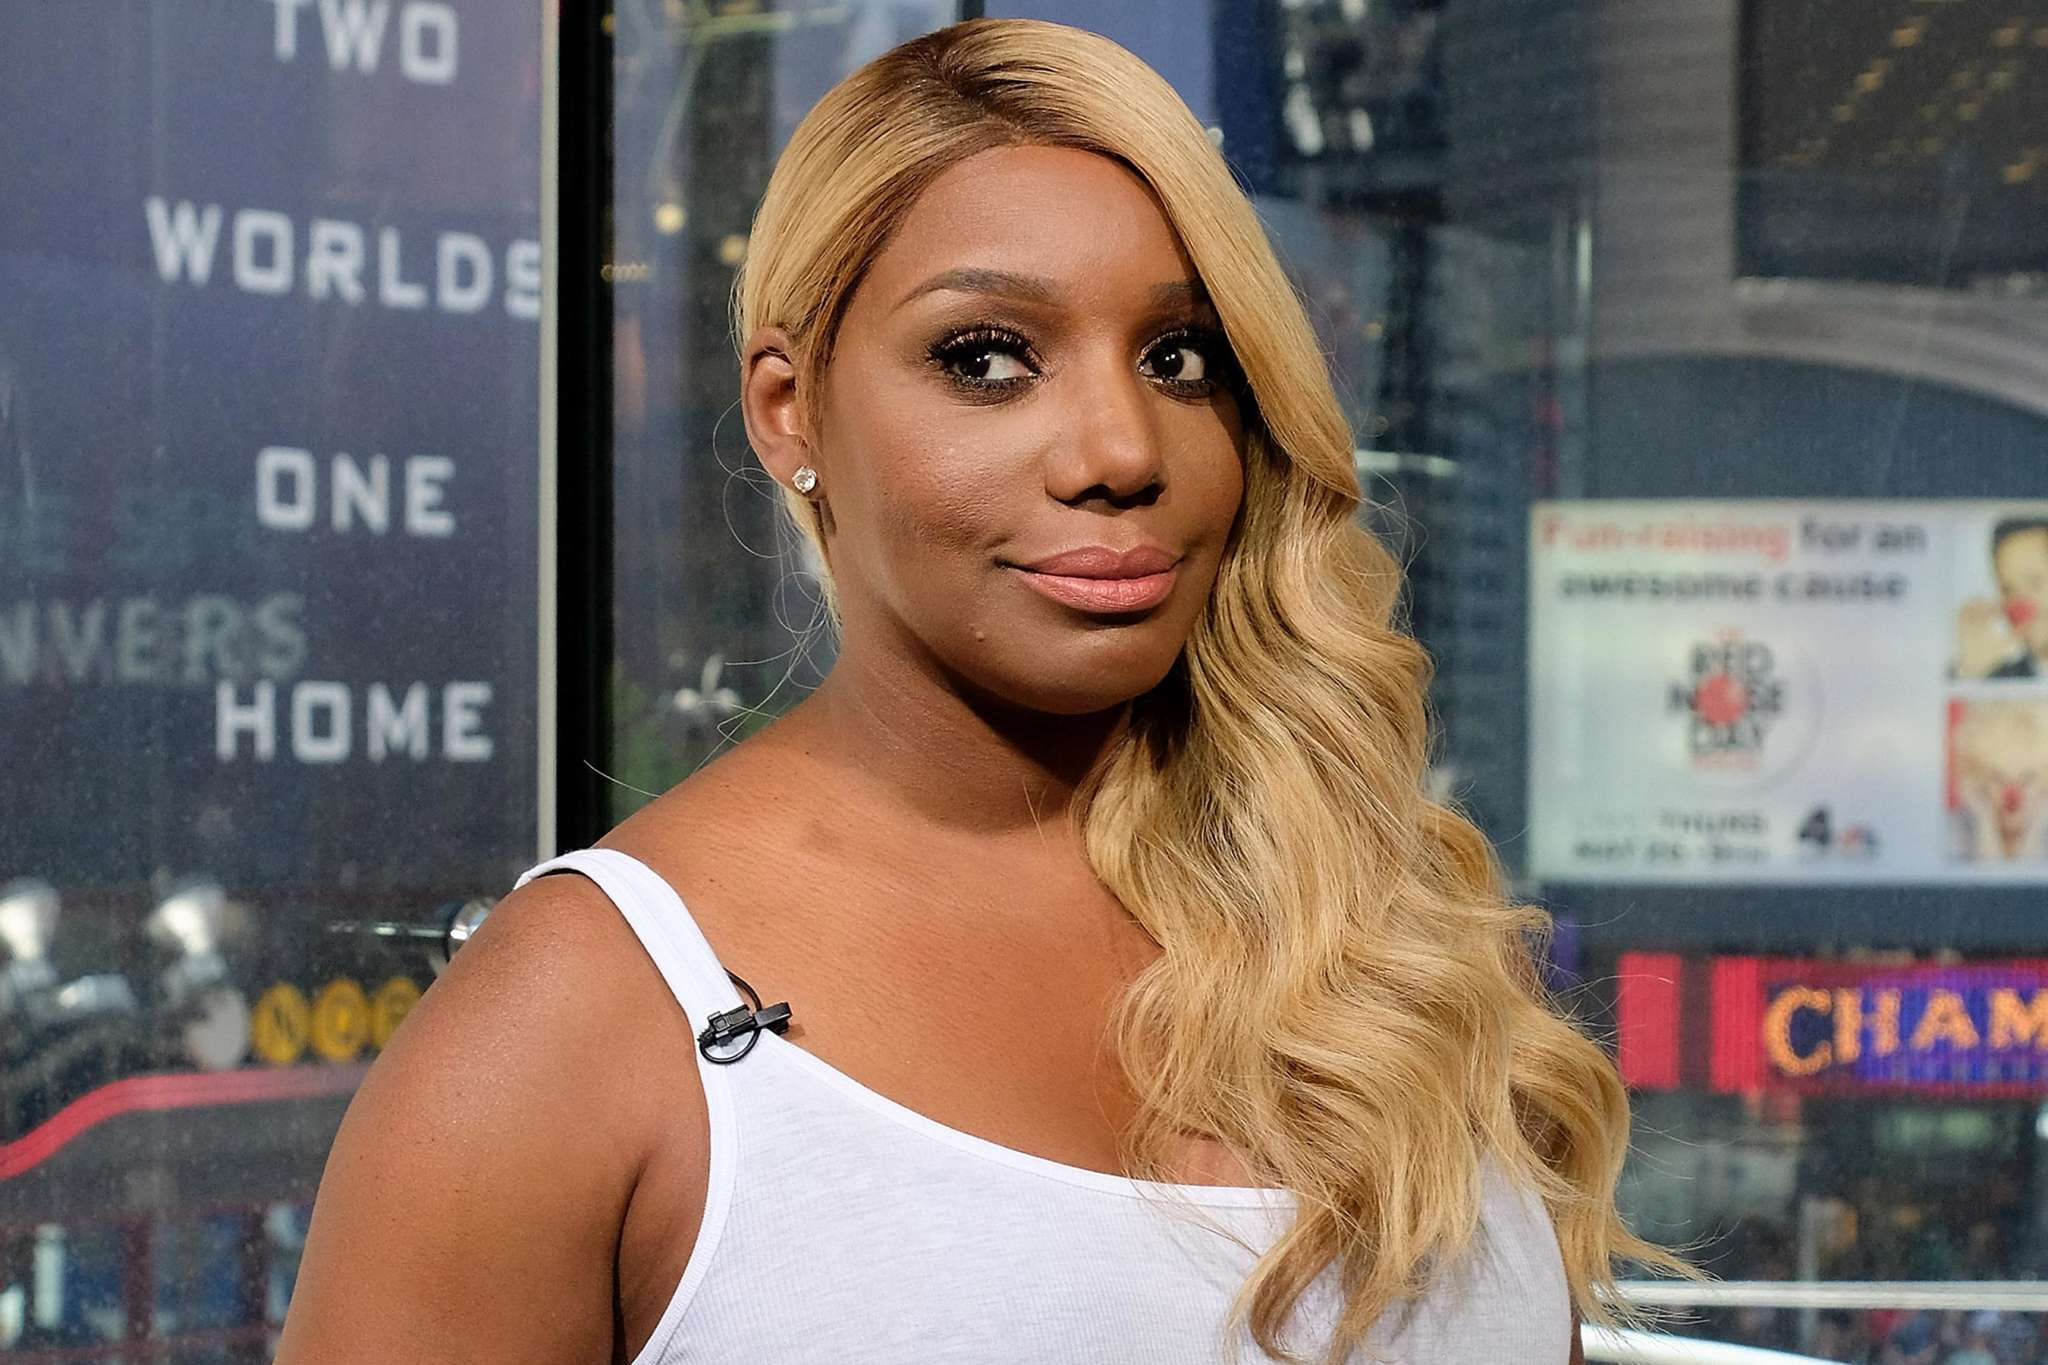 NeNe Leakes Shares A Video On Heer YouTube Channel To Recap A RHOA 'Hairy Situation'